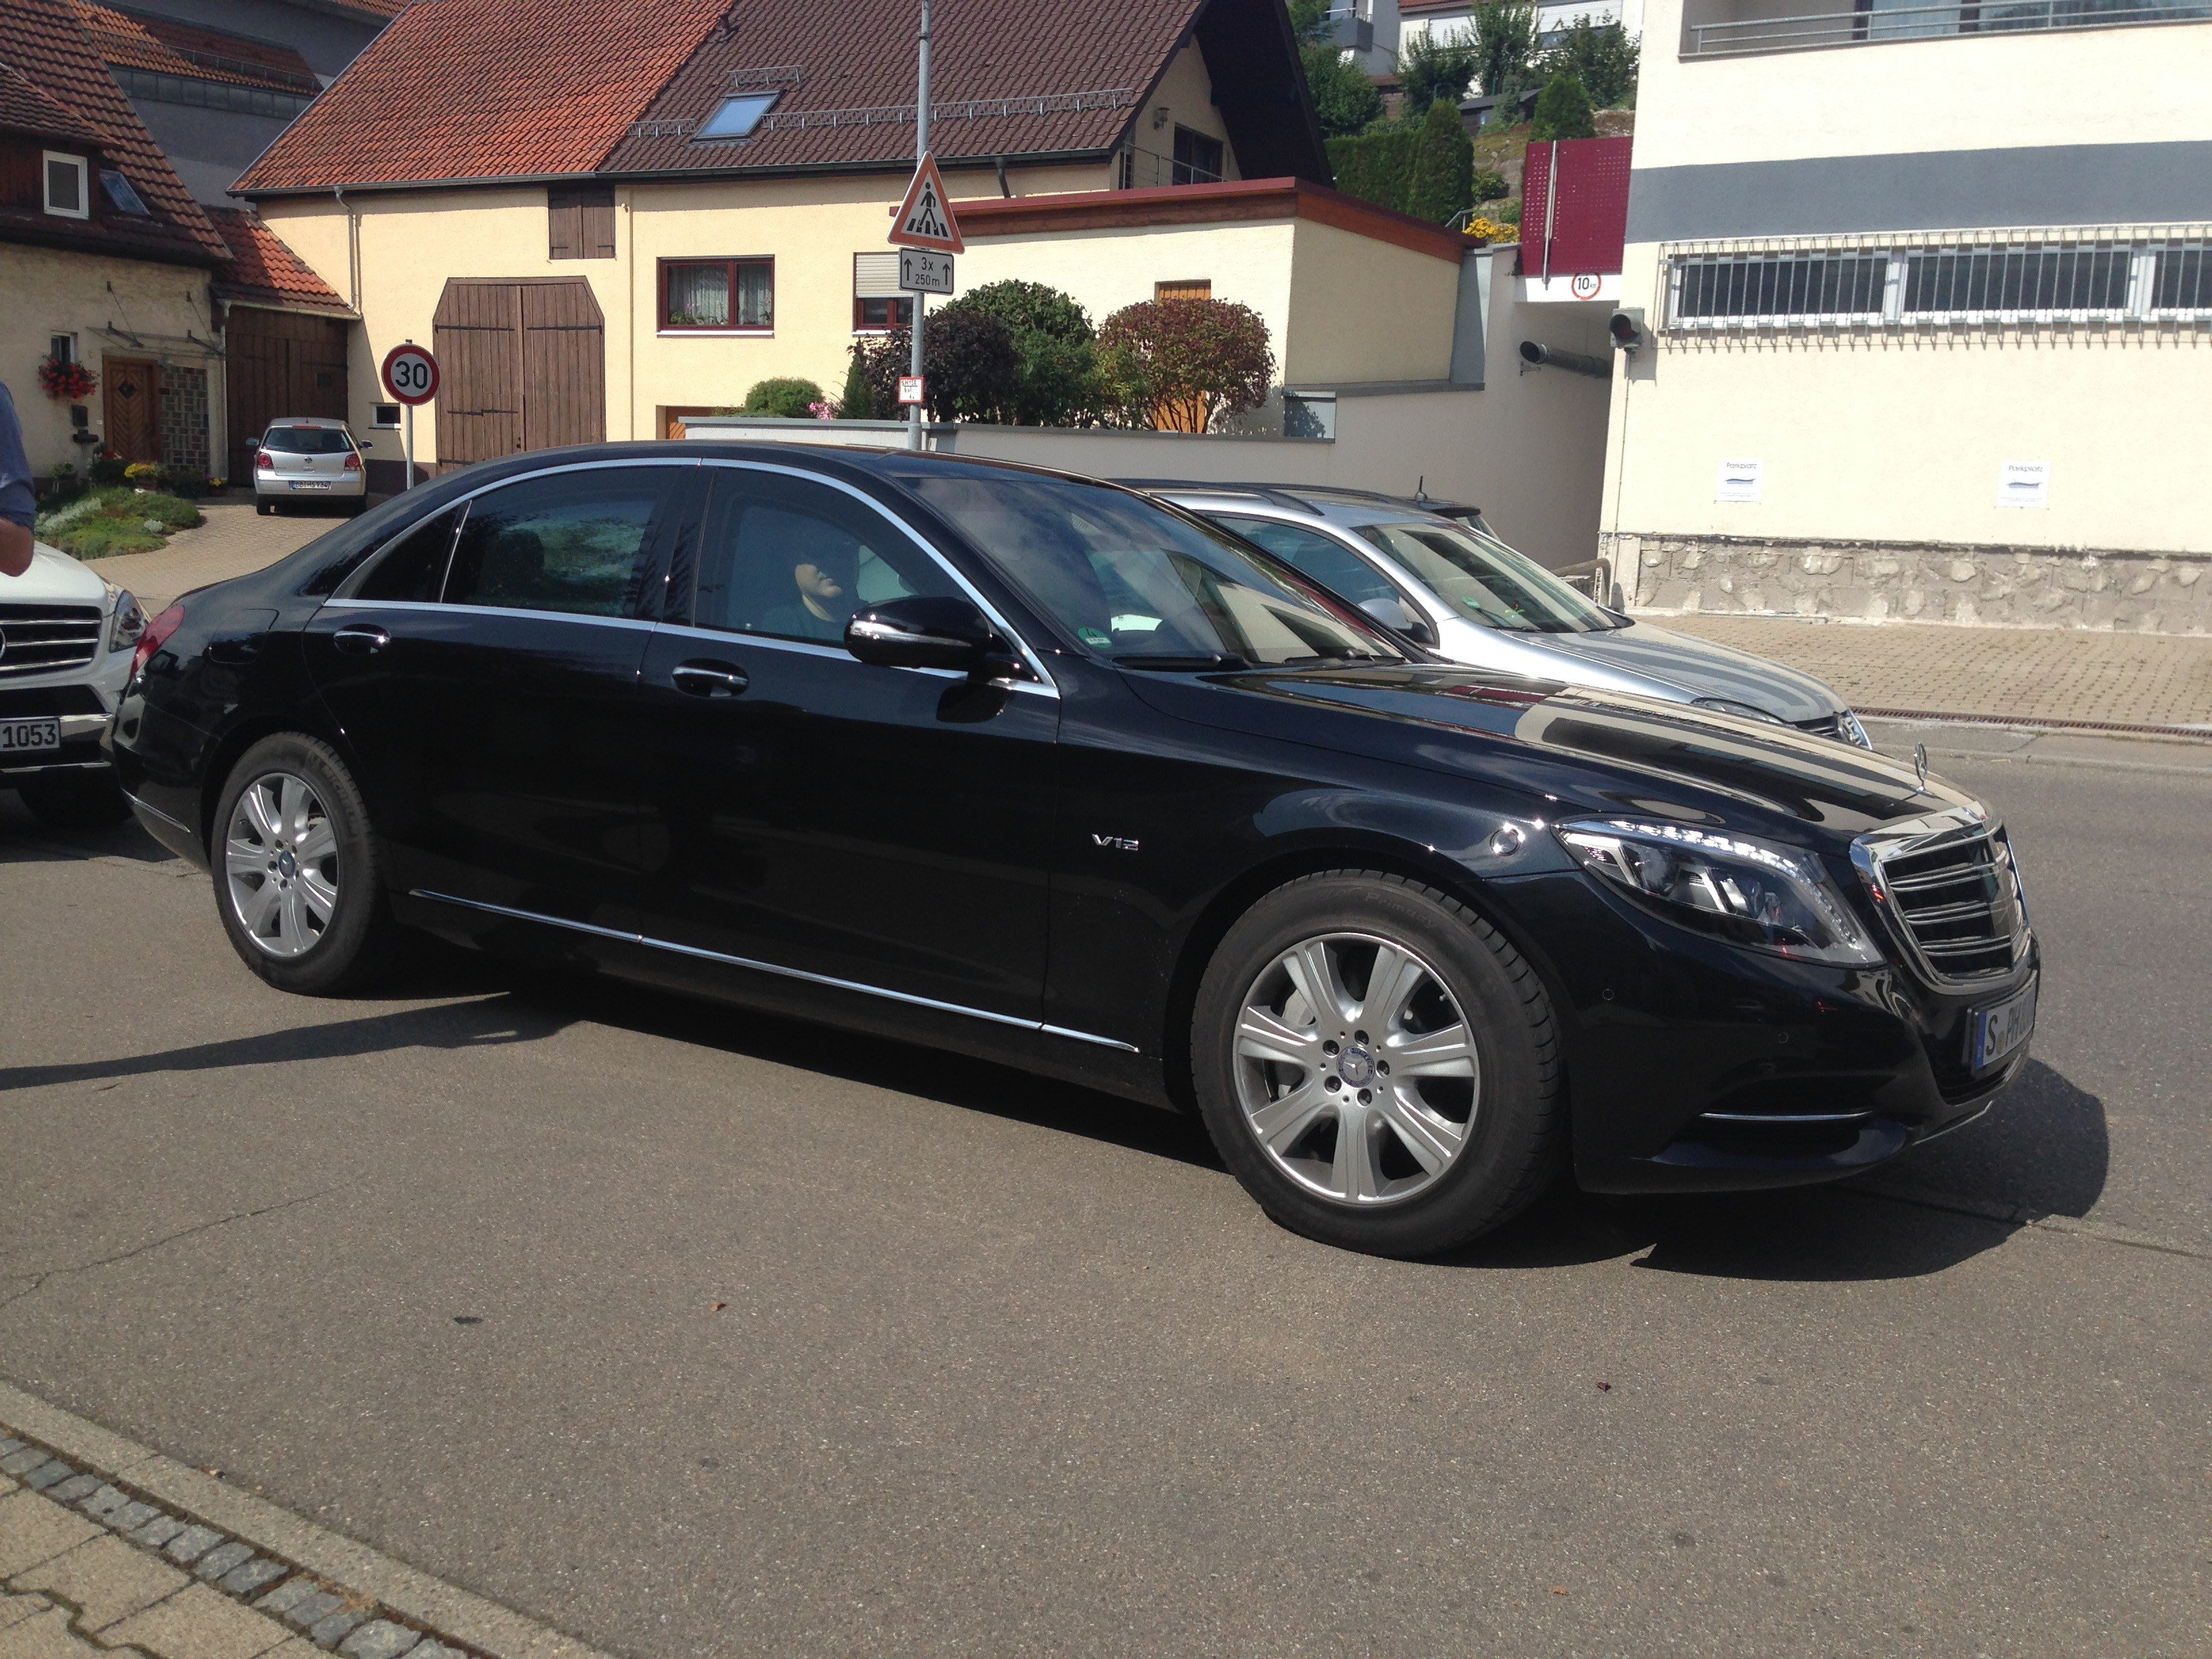 Mercedes benz s600 guard review driving the armoured g for Mercedes benz armored